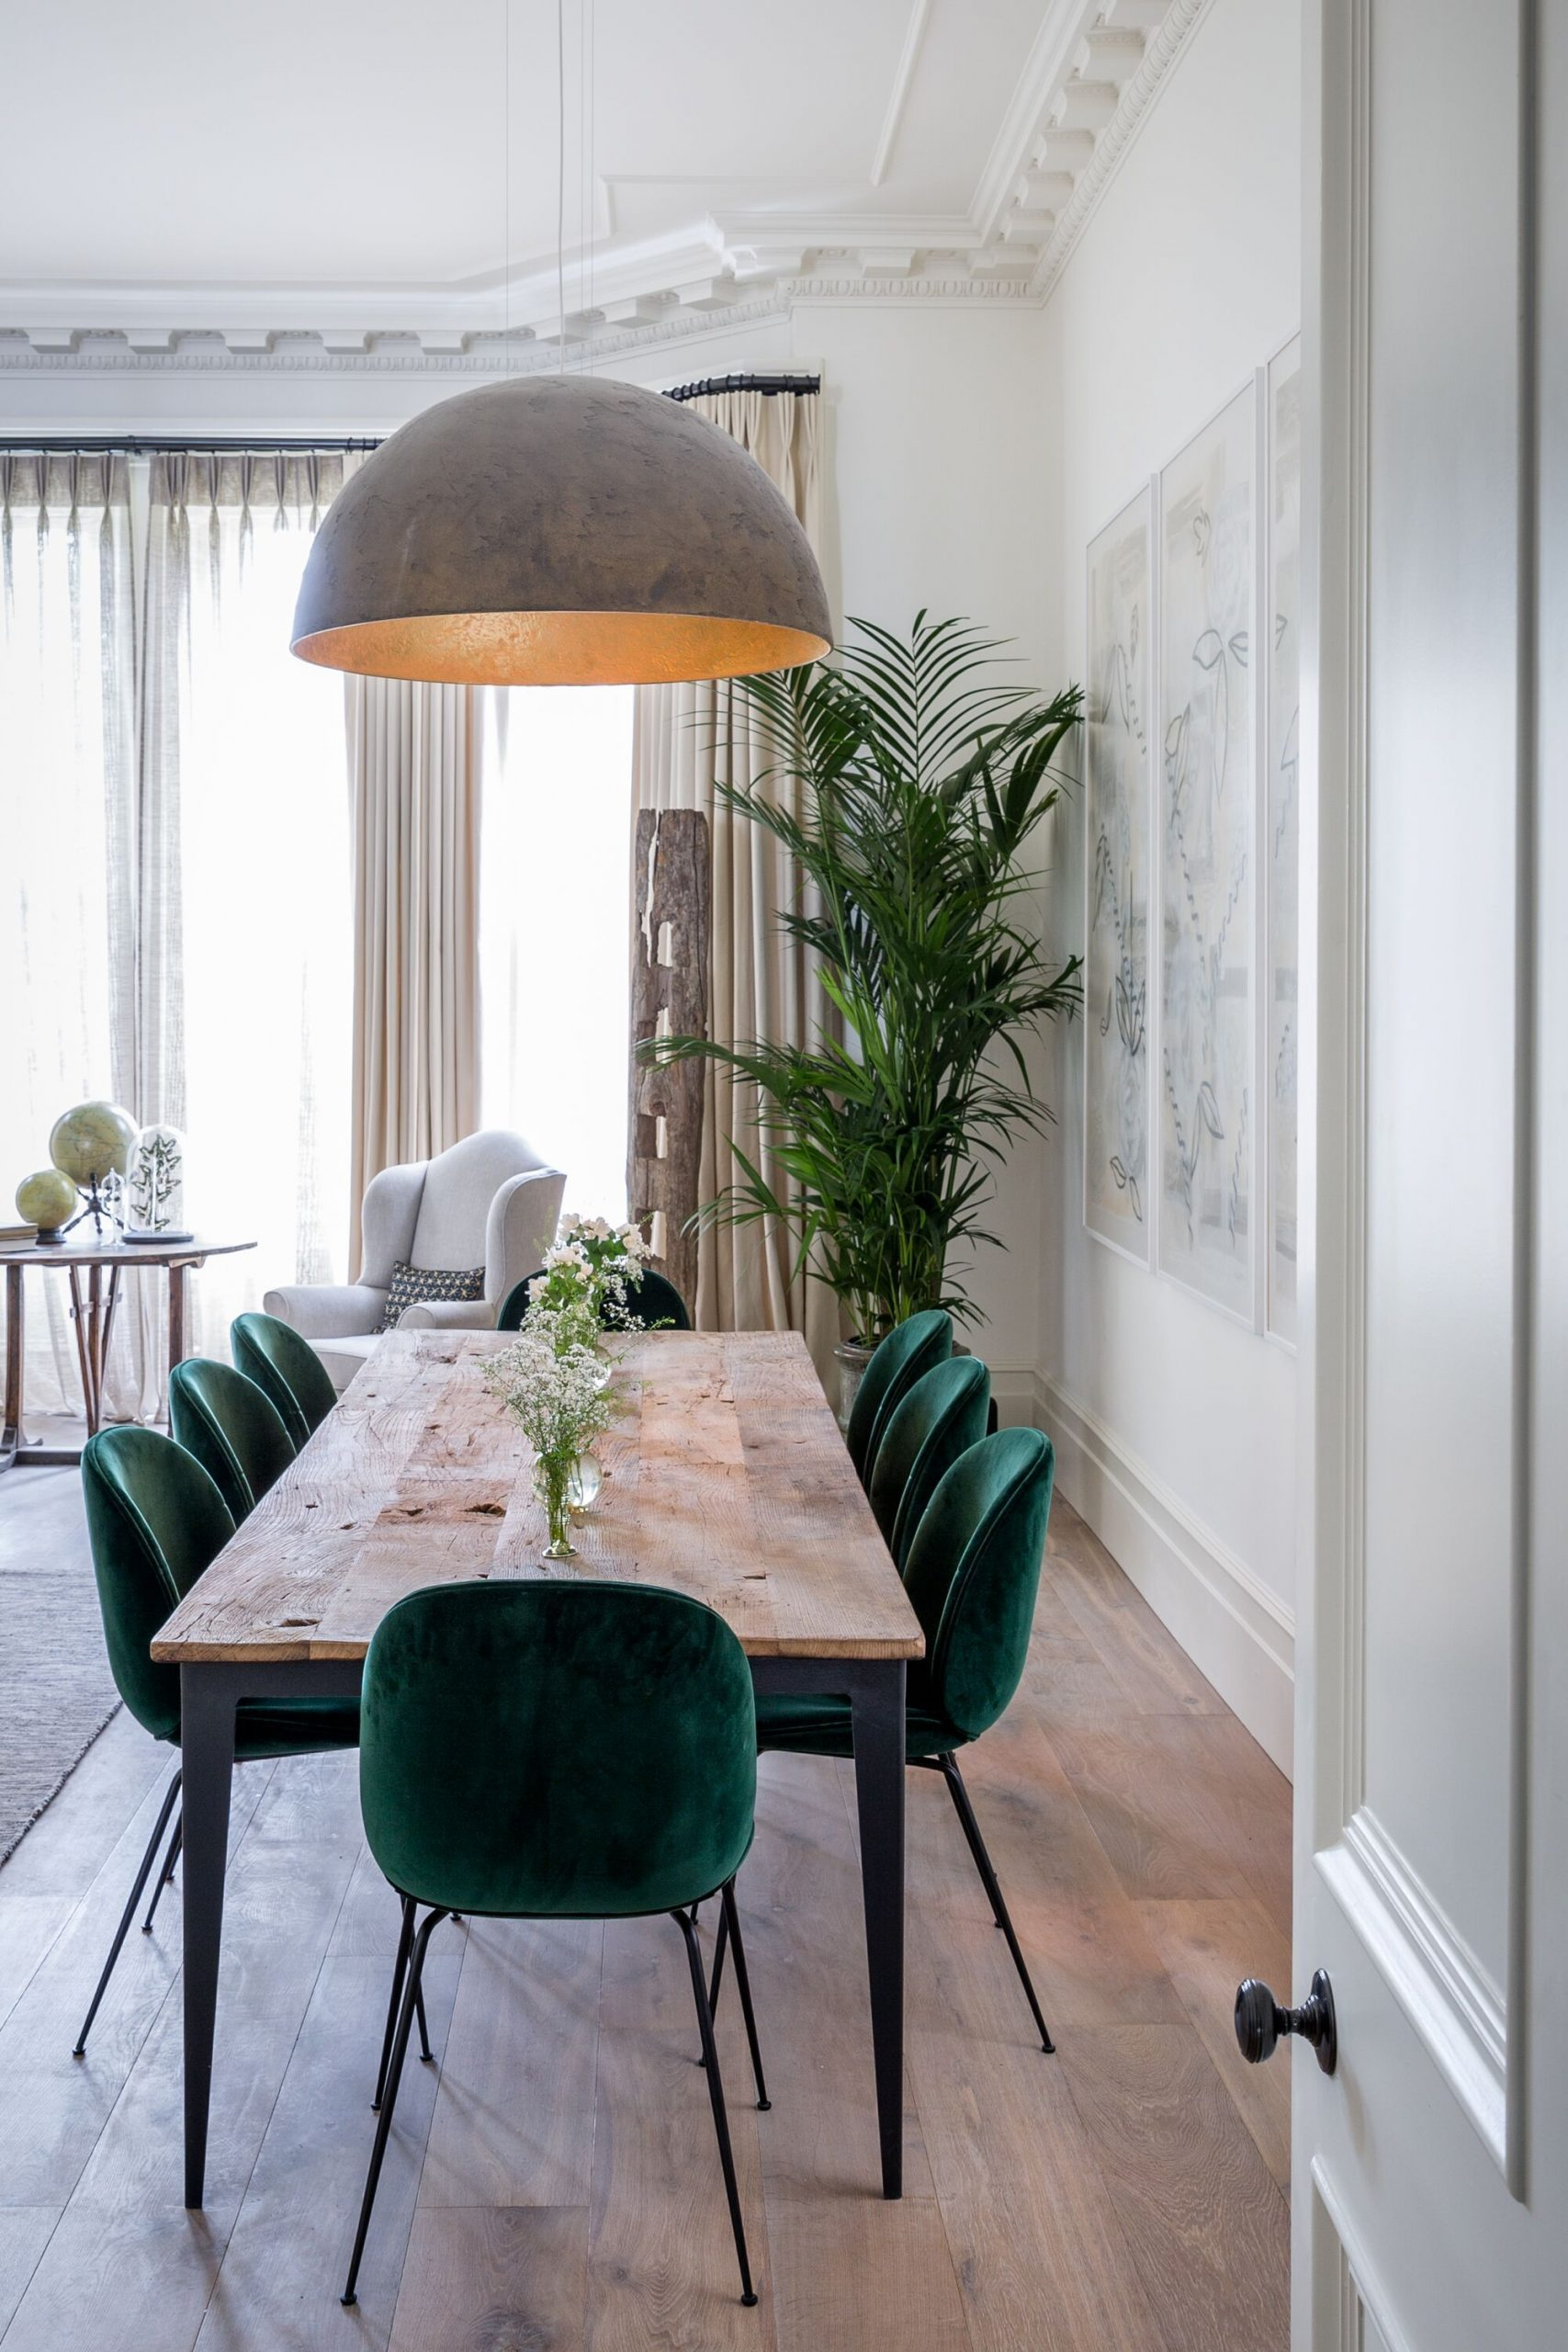 Home Interiors Tips: How To Style Open-Plan Living